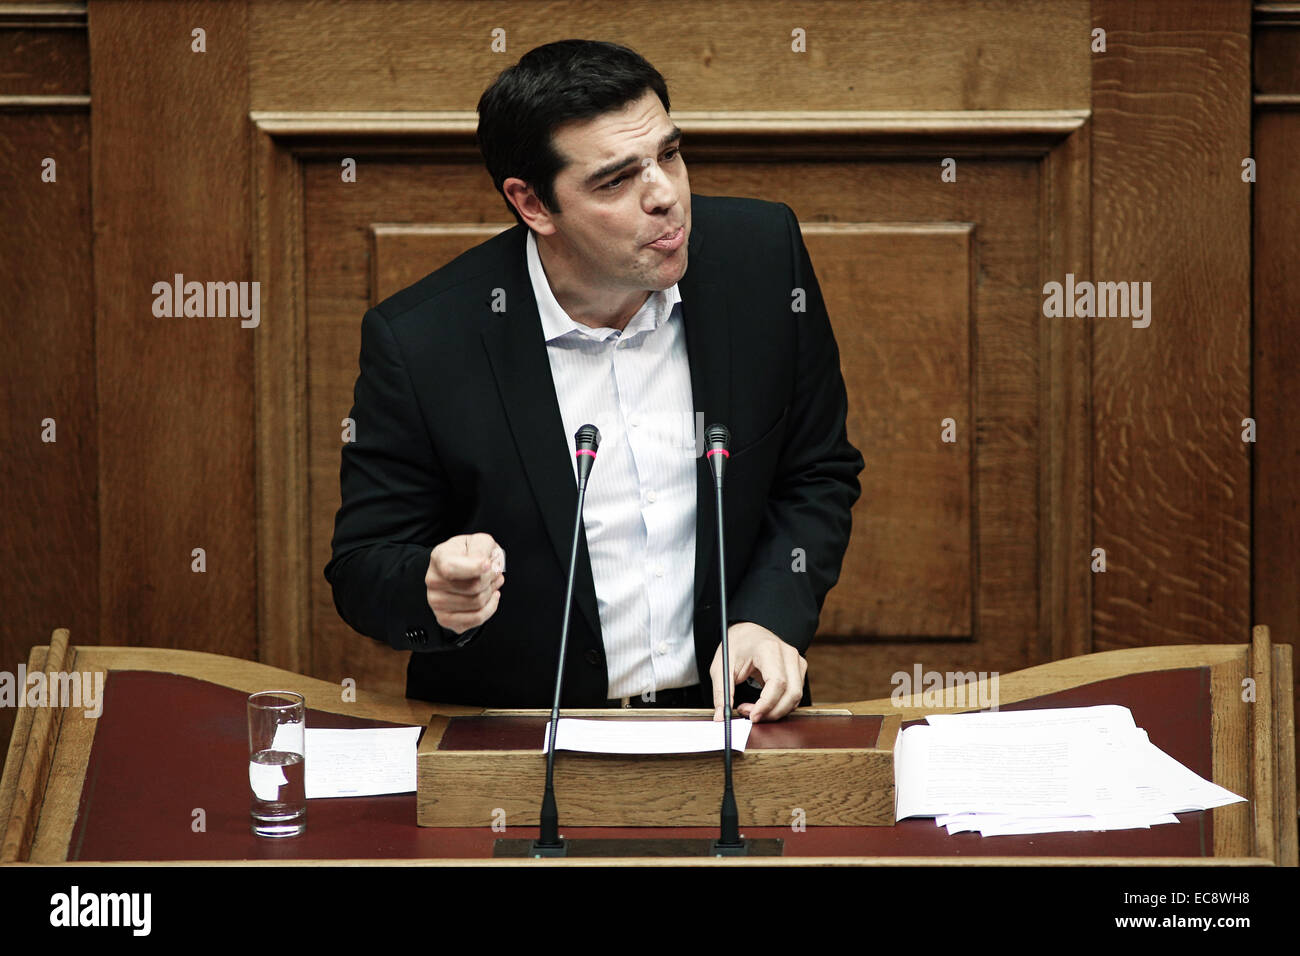 Greece's main opposition leader Alexis Tsipras of Syriza party speaks during a parliament meeting for a vote - Stock Image